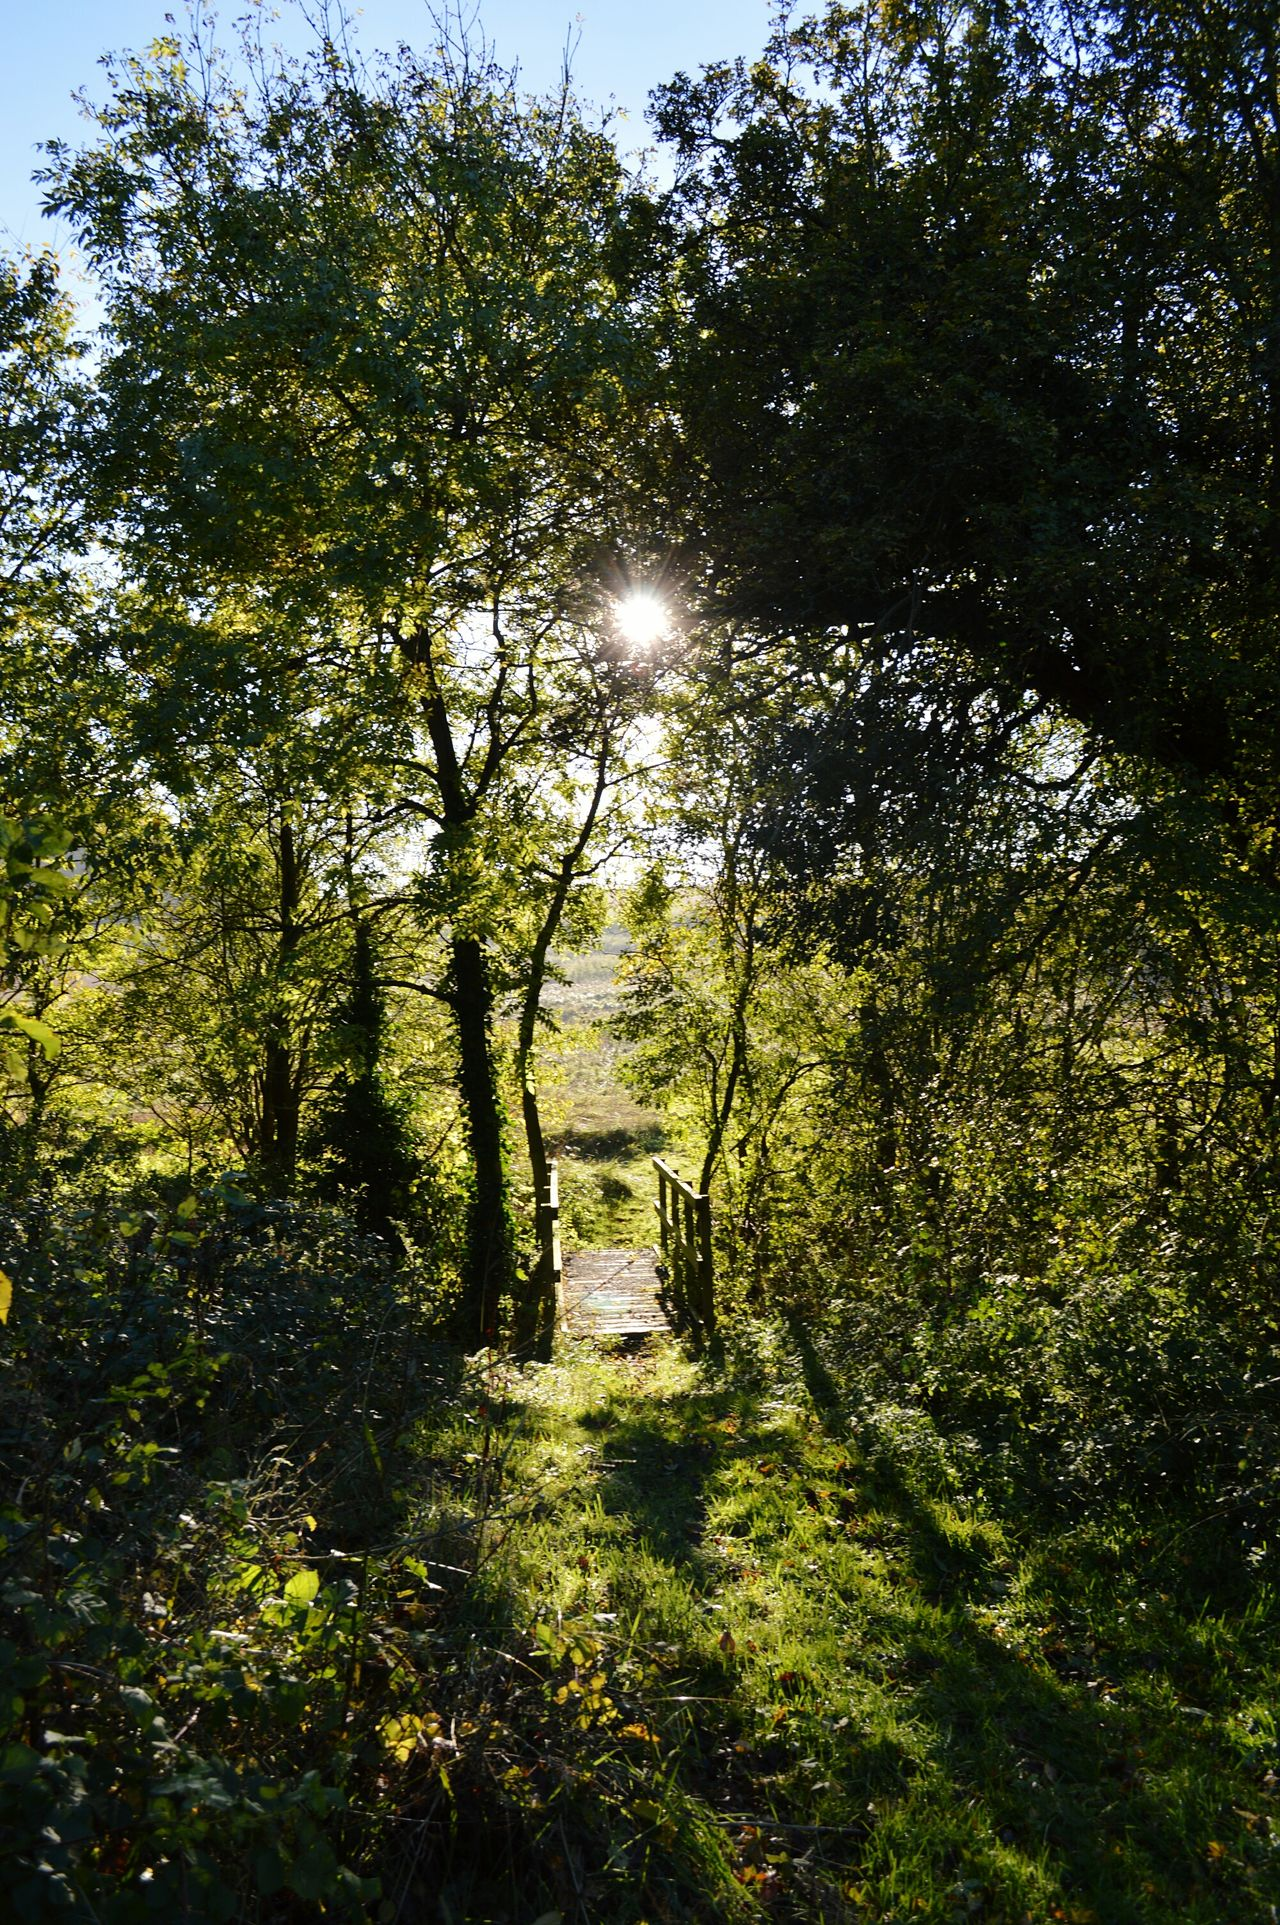 Tree Growth Tranquility Tranquil Scene Sunlight Green Color Scenics Nature Beauty In Nature Sun Footpath Branch Sunbeam Day The Way Forward Green Outdoors Non-urban Scene Sunny Back Lit Bridge Papworth Everard November Fairy Glen